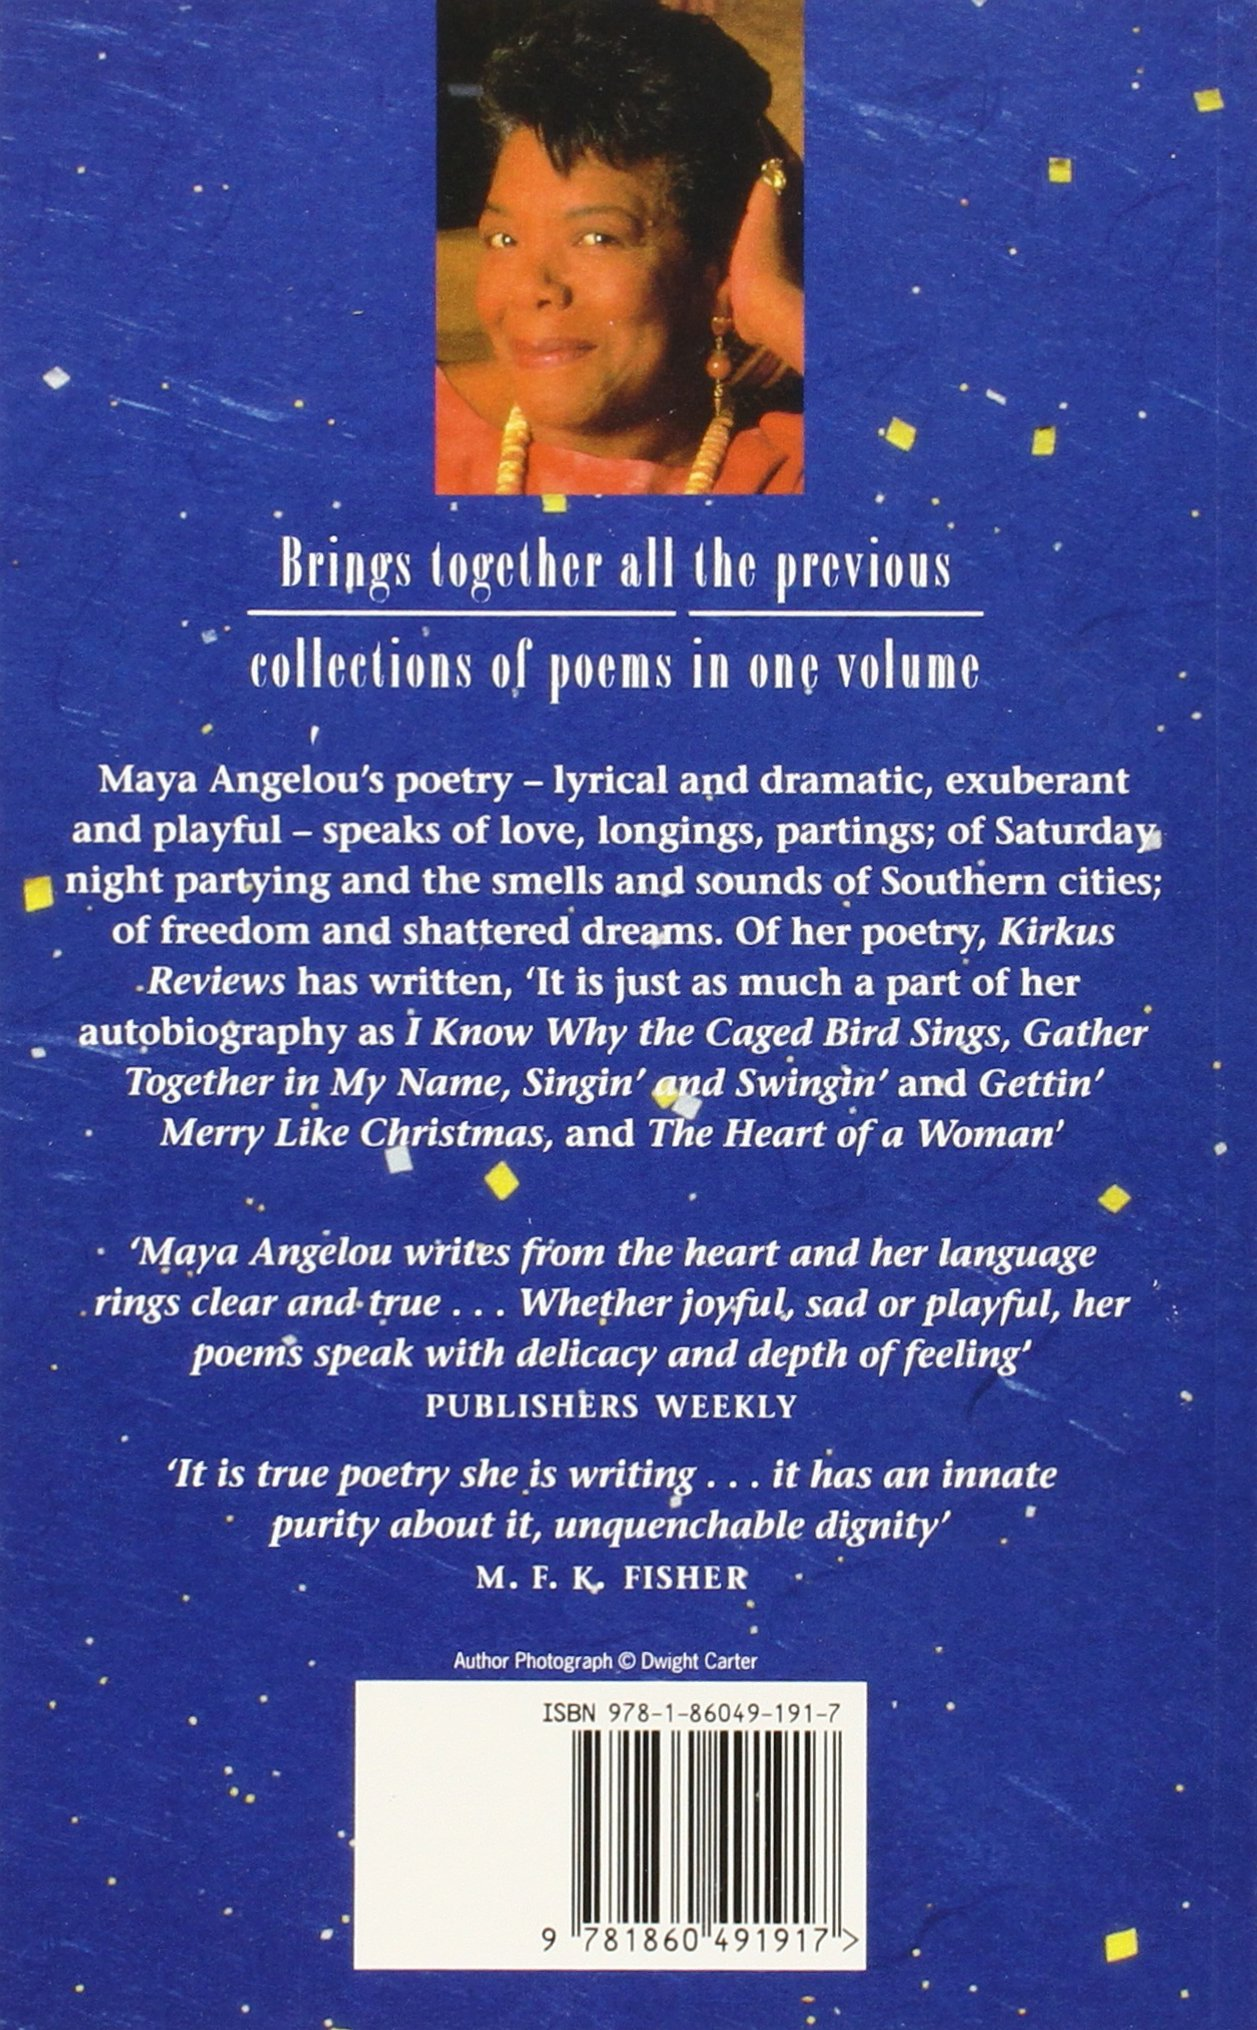 Theplete Collected Poems Of Maya Angelou: Amazon: Maya Angelou:  9781860491917: Books